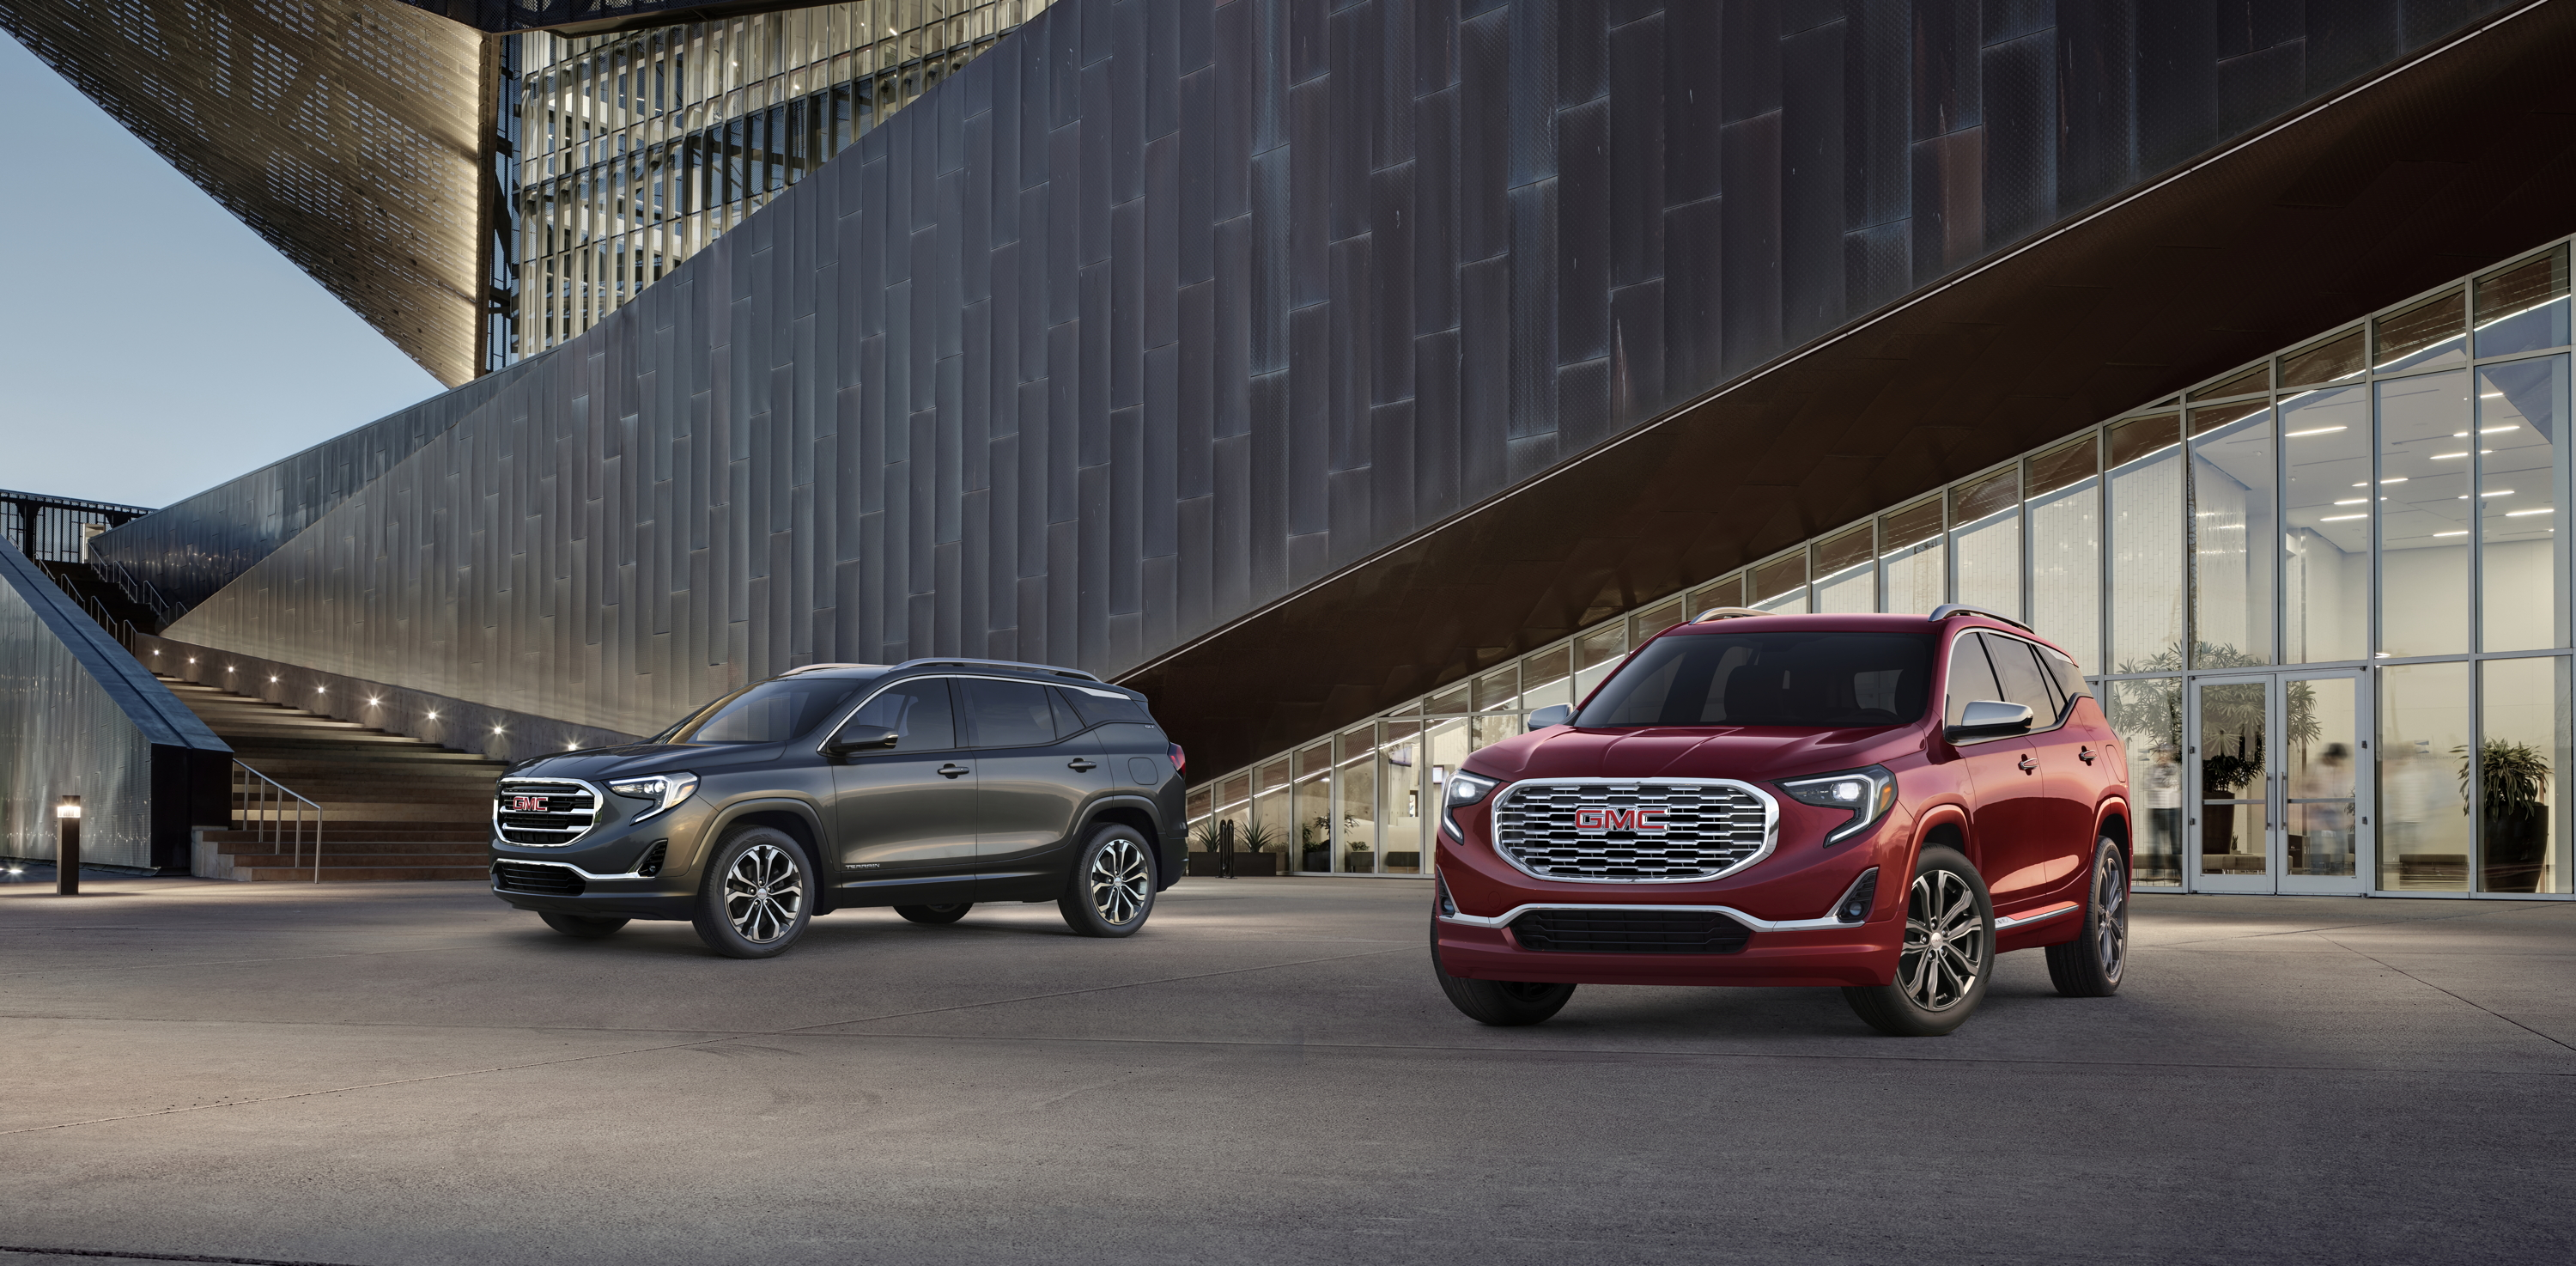 auto of roadshow pricing the review and terrain hd features gmc all preview